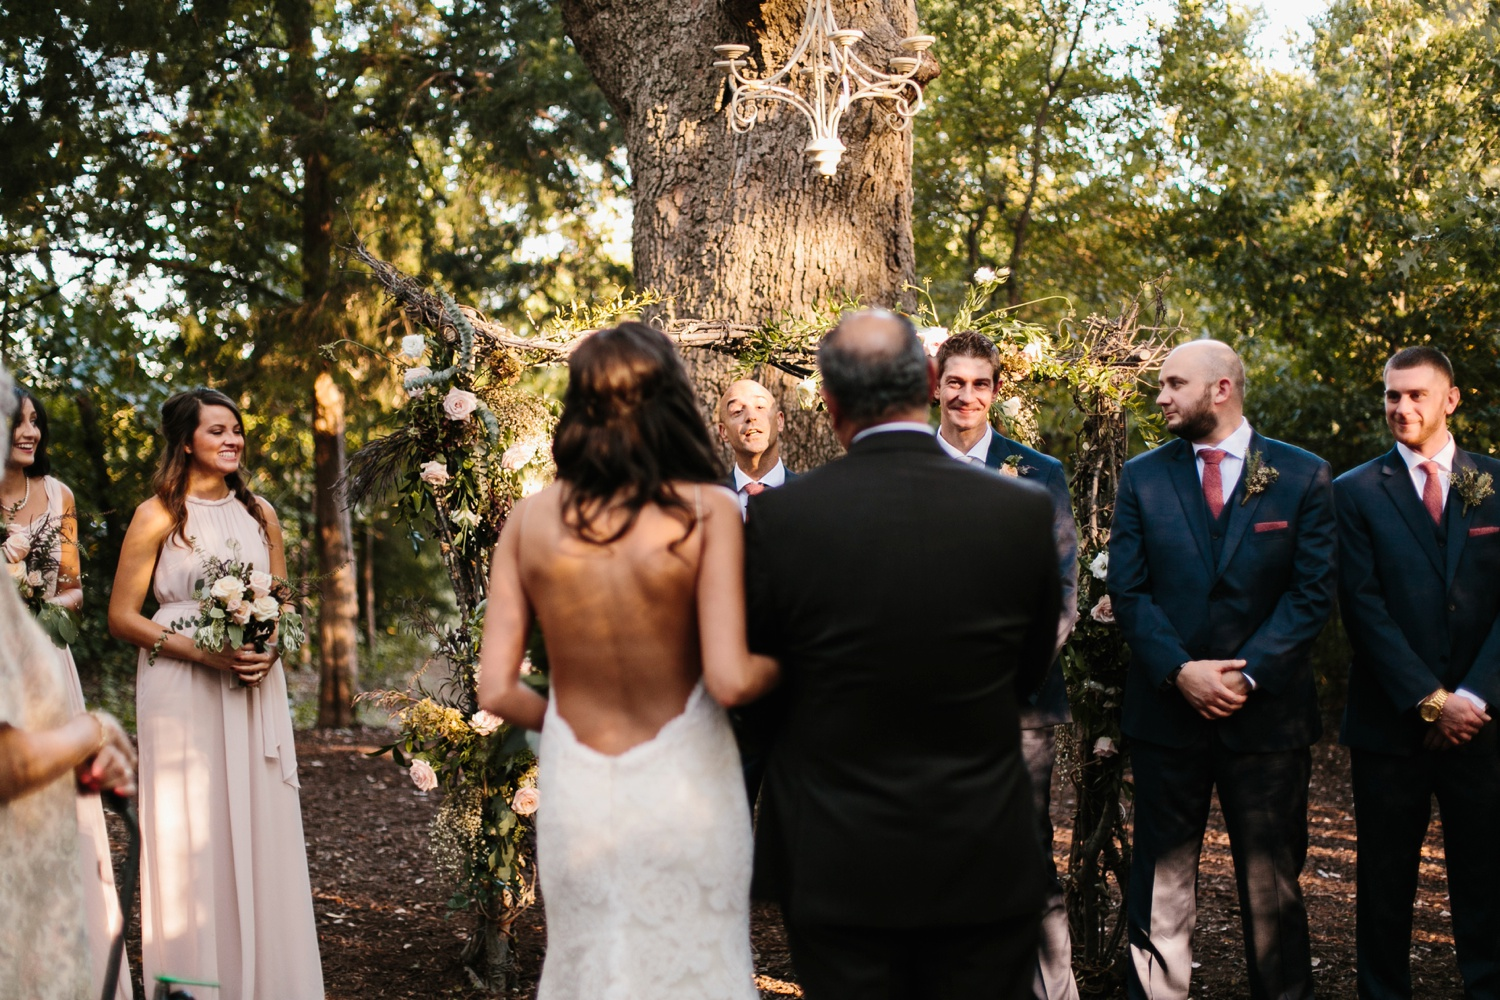 Erica + Henry | a bohemian inspired wedding at Chandlers Gardens in Salina, TX by North Texas Wedding Photographer Rachel Meagan Photography 071